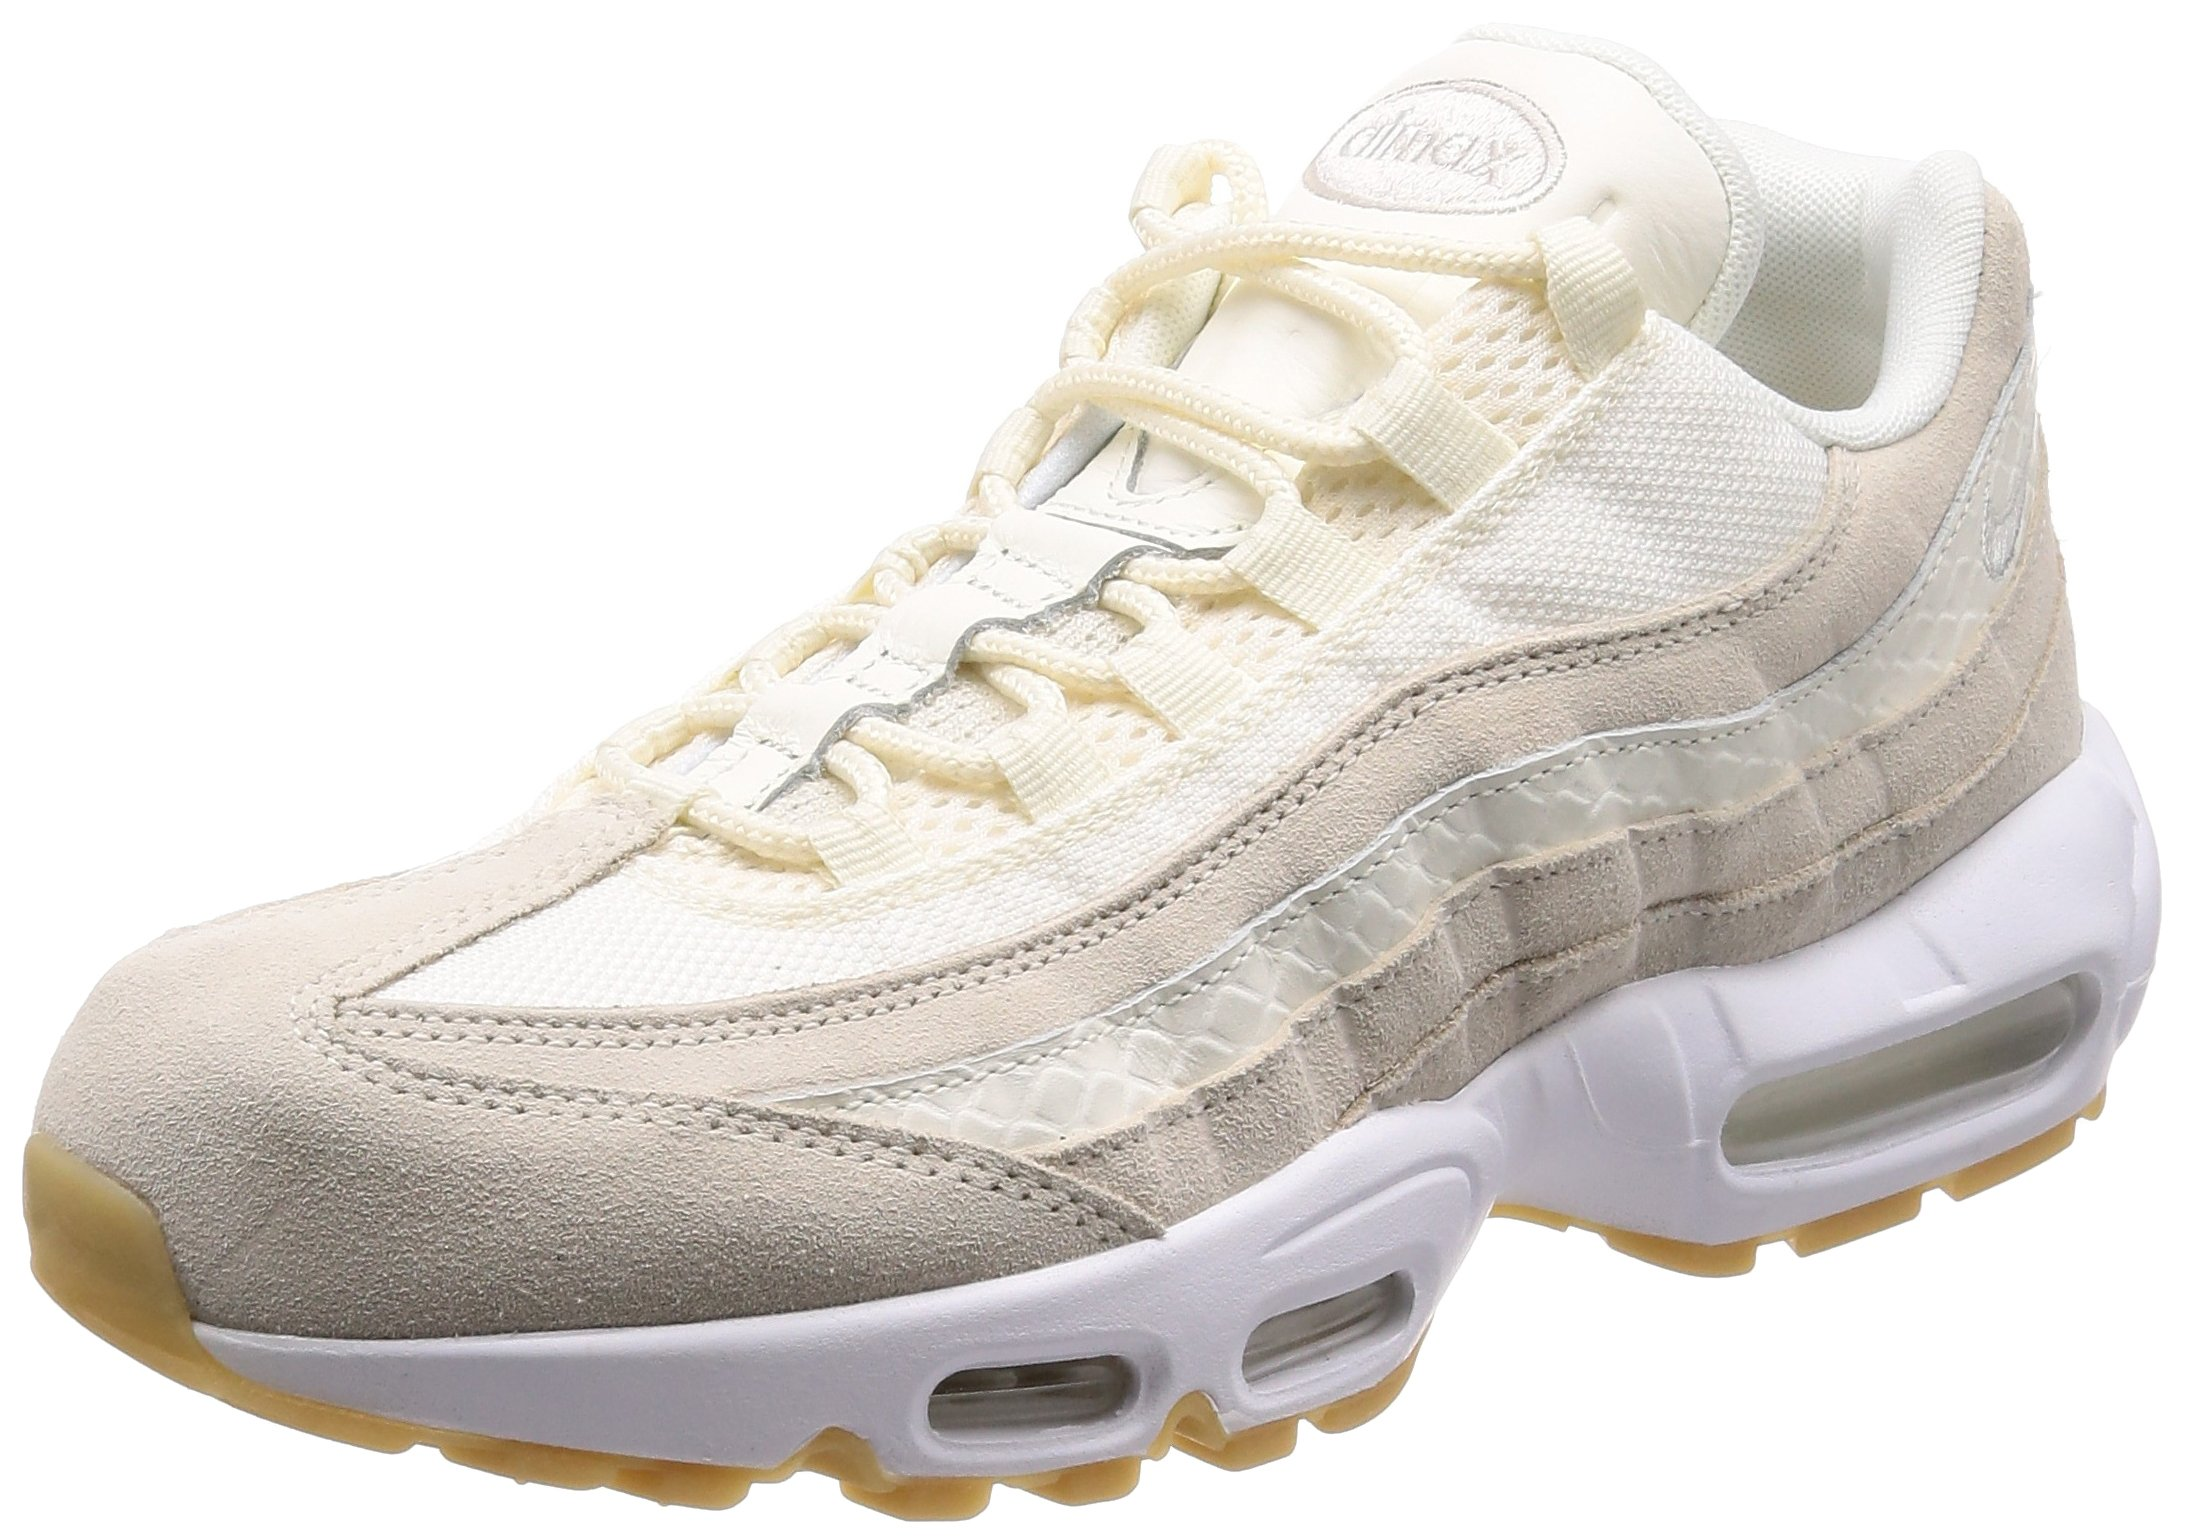 hot sale online 2be3c 43f9f Nike Air Max 95 Premium Men's Shoes Sail/Sail-Desert Sand/White 538416-102  (10.5 D(M) US)